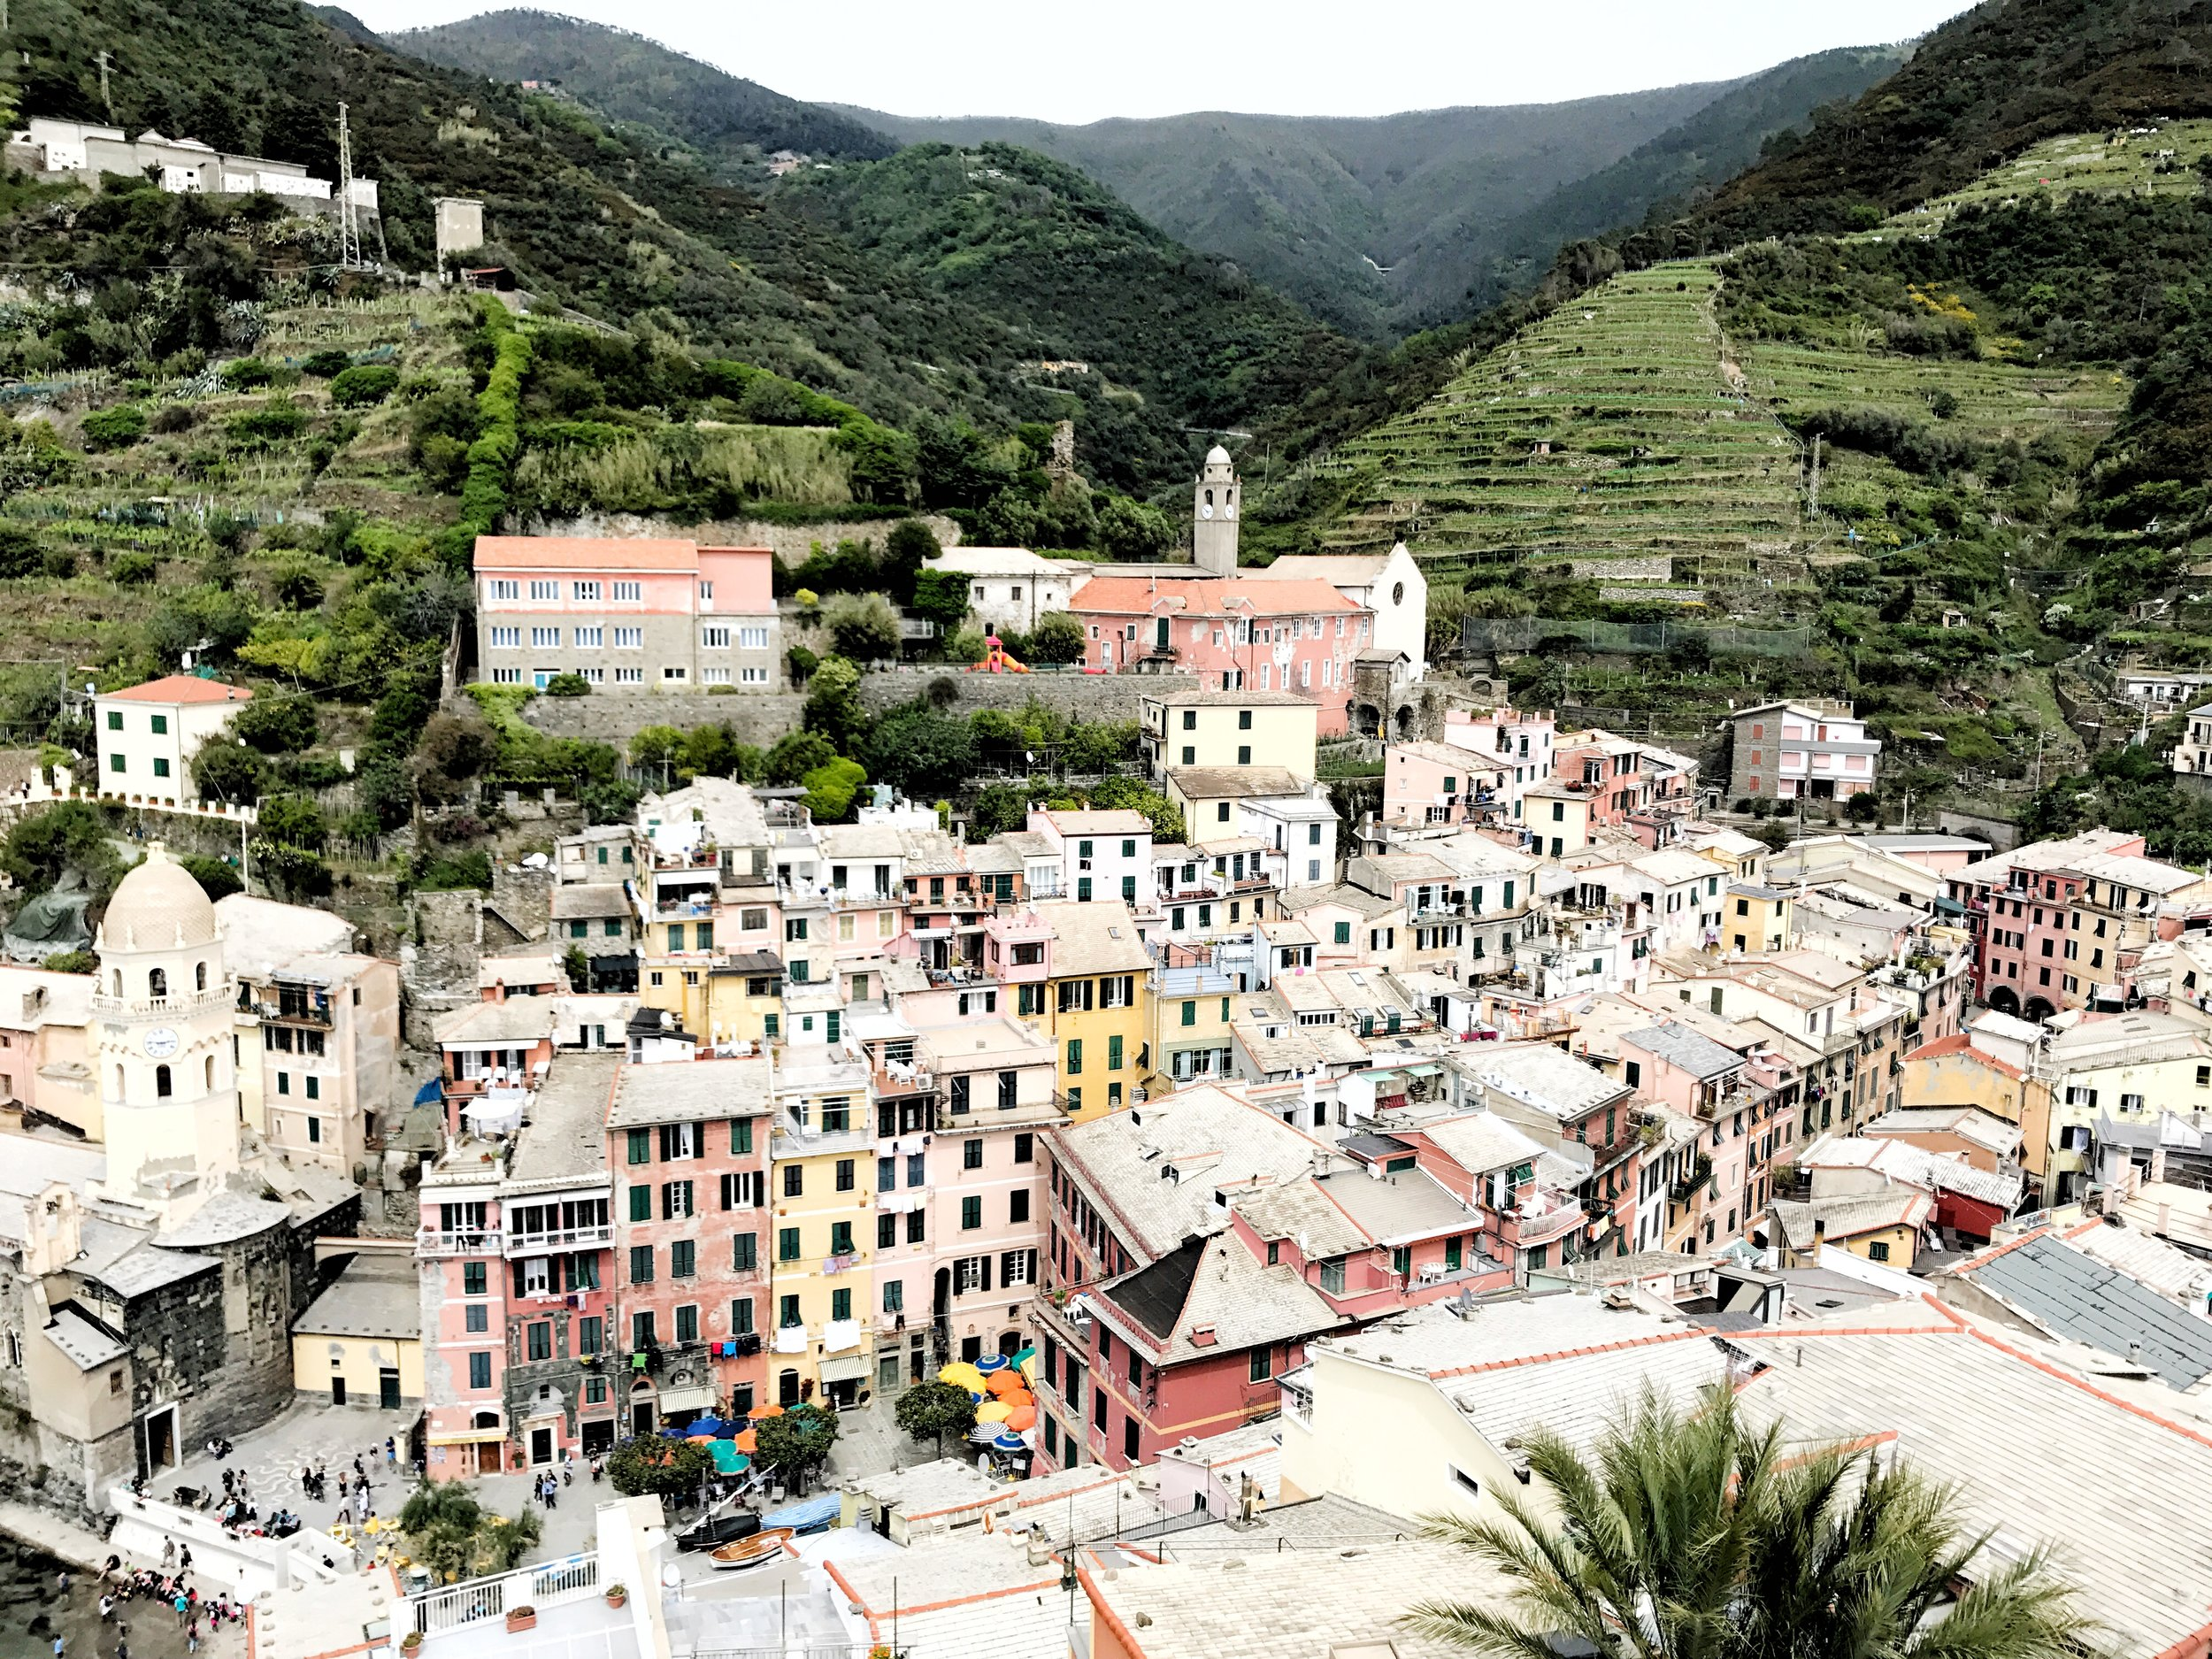 Panoramic views of Vernazza, one of the five villages of Cinque Terre in Italy